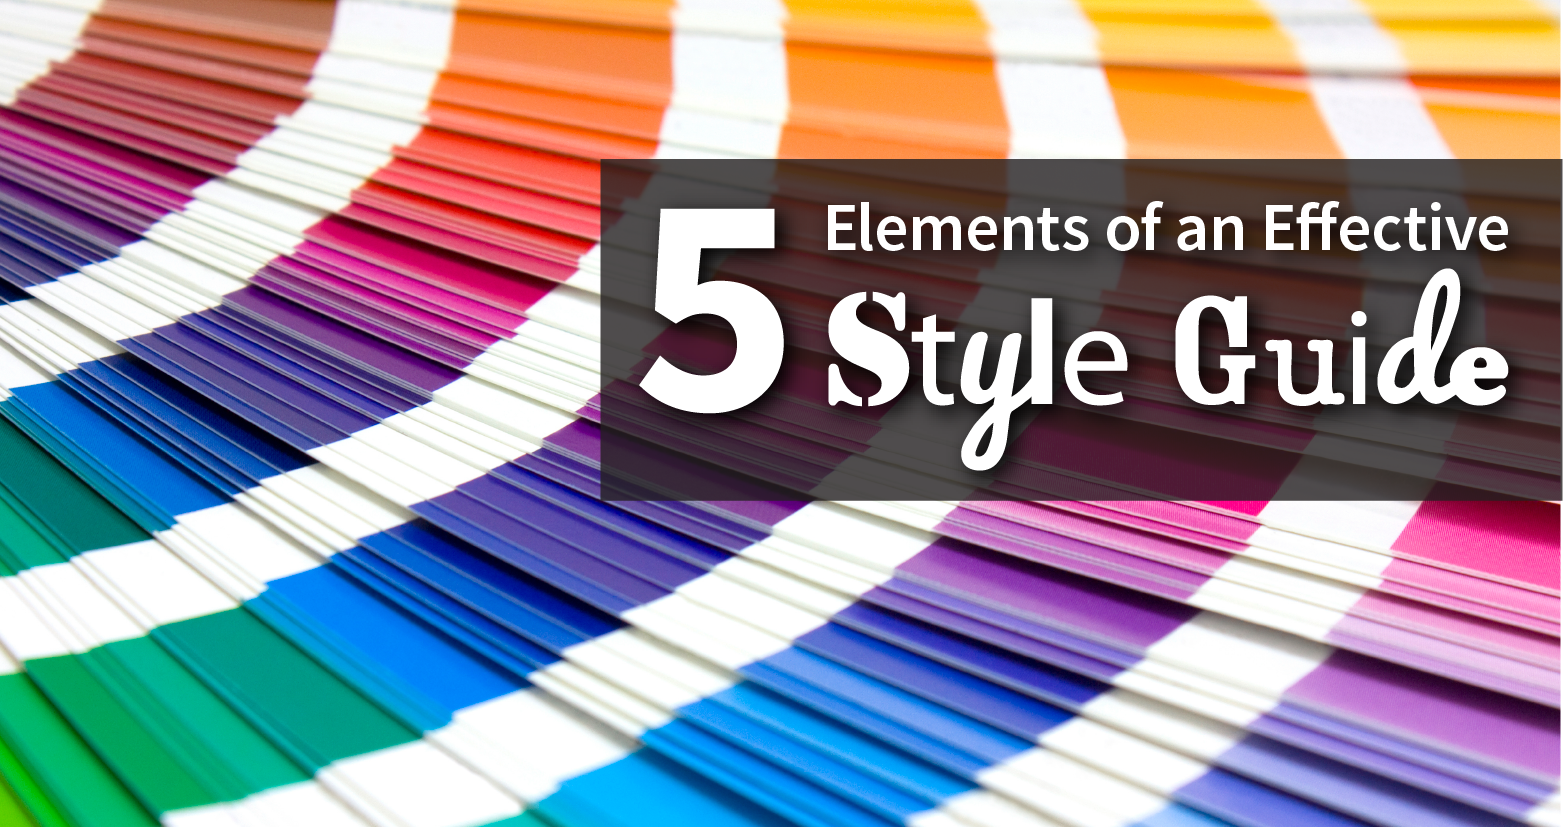 5 Core Elements of an Effective Brand Style Guide